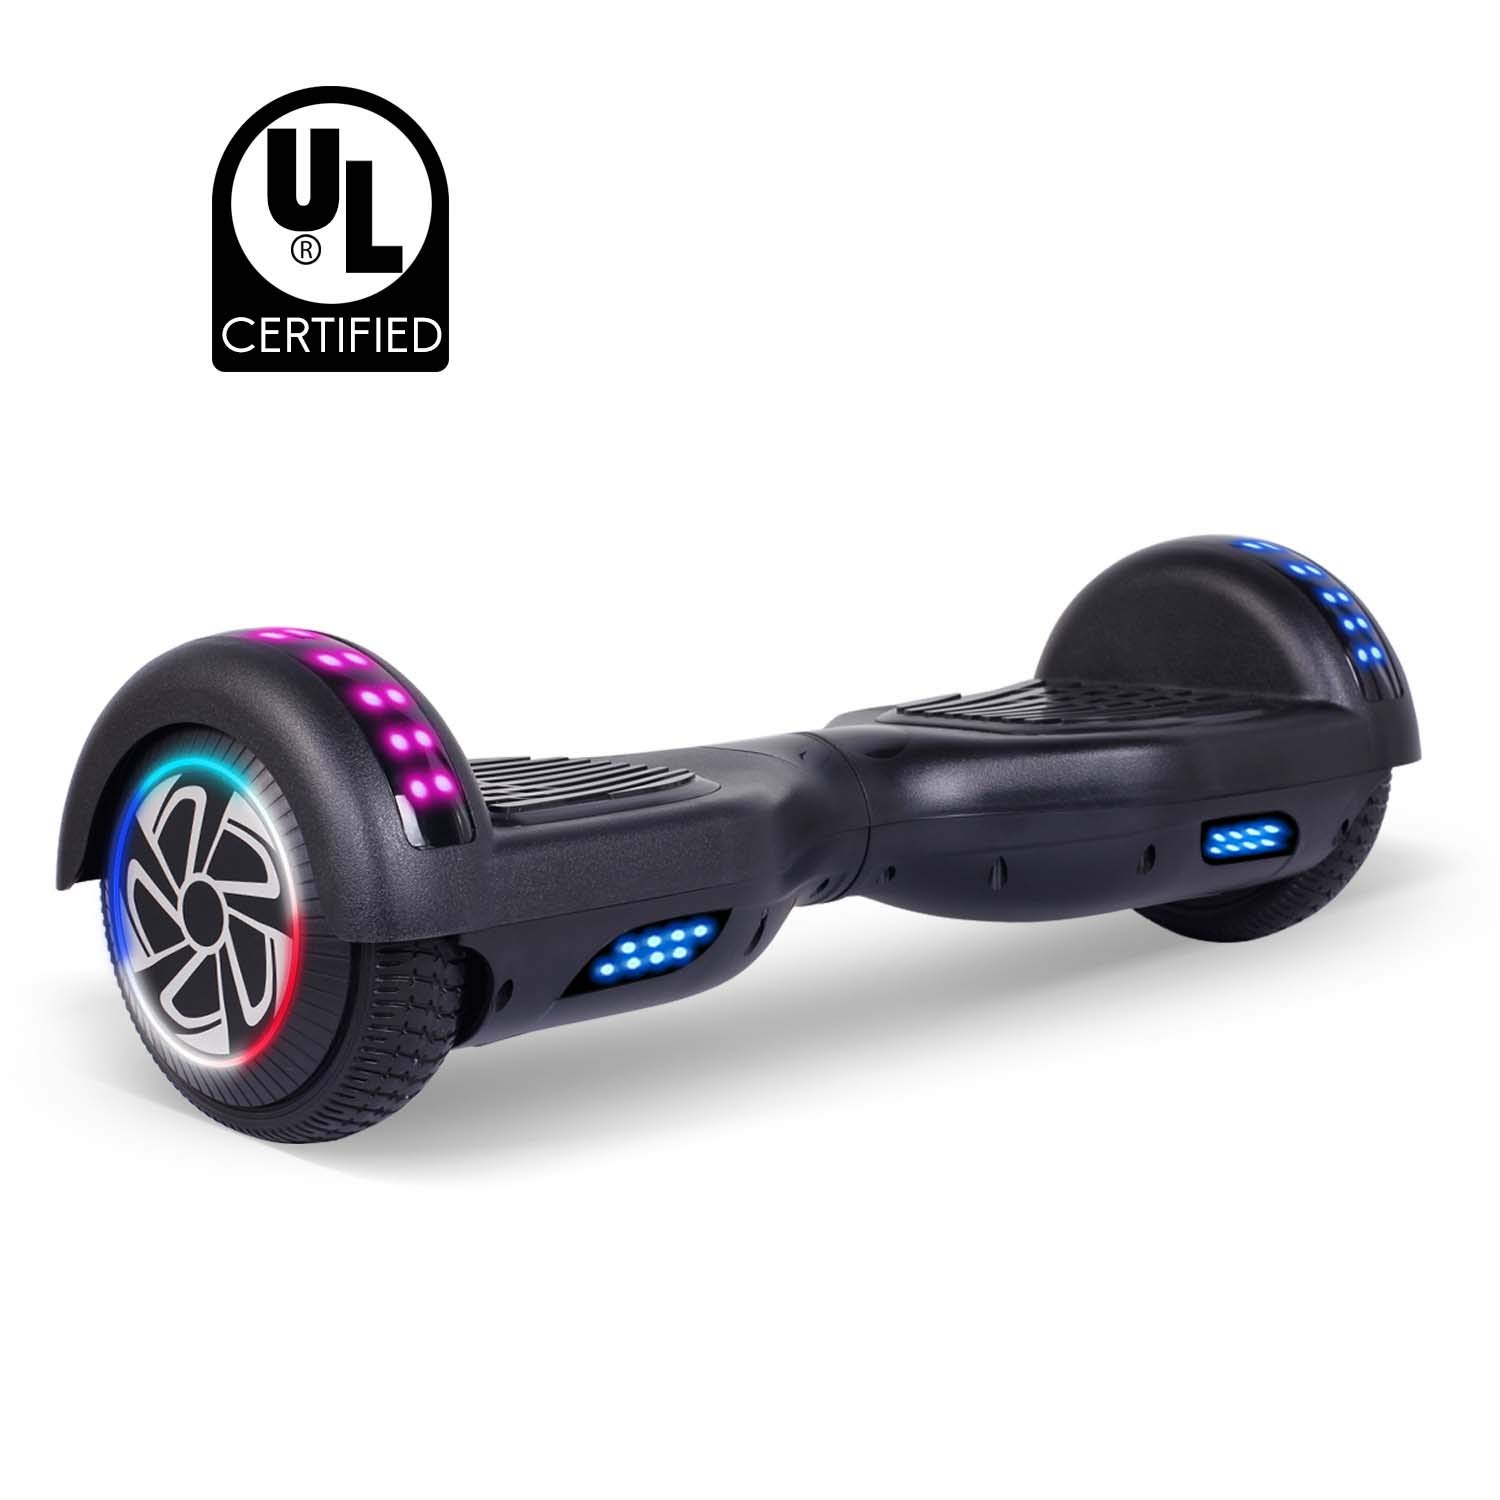 "SWEETBUY Hoverboards 6.5"" Two-Wheel Self Balancing Electric Scooter with LED Light Flash Lights Wheels with UL 2272 Certified and Carry Bag(Black)"